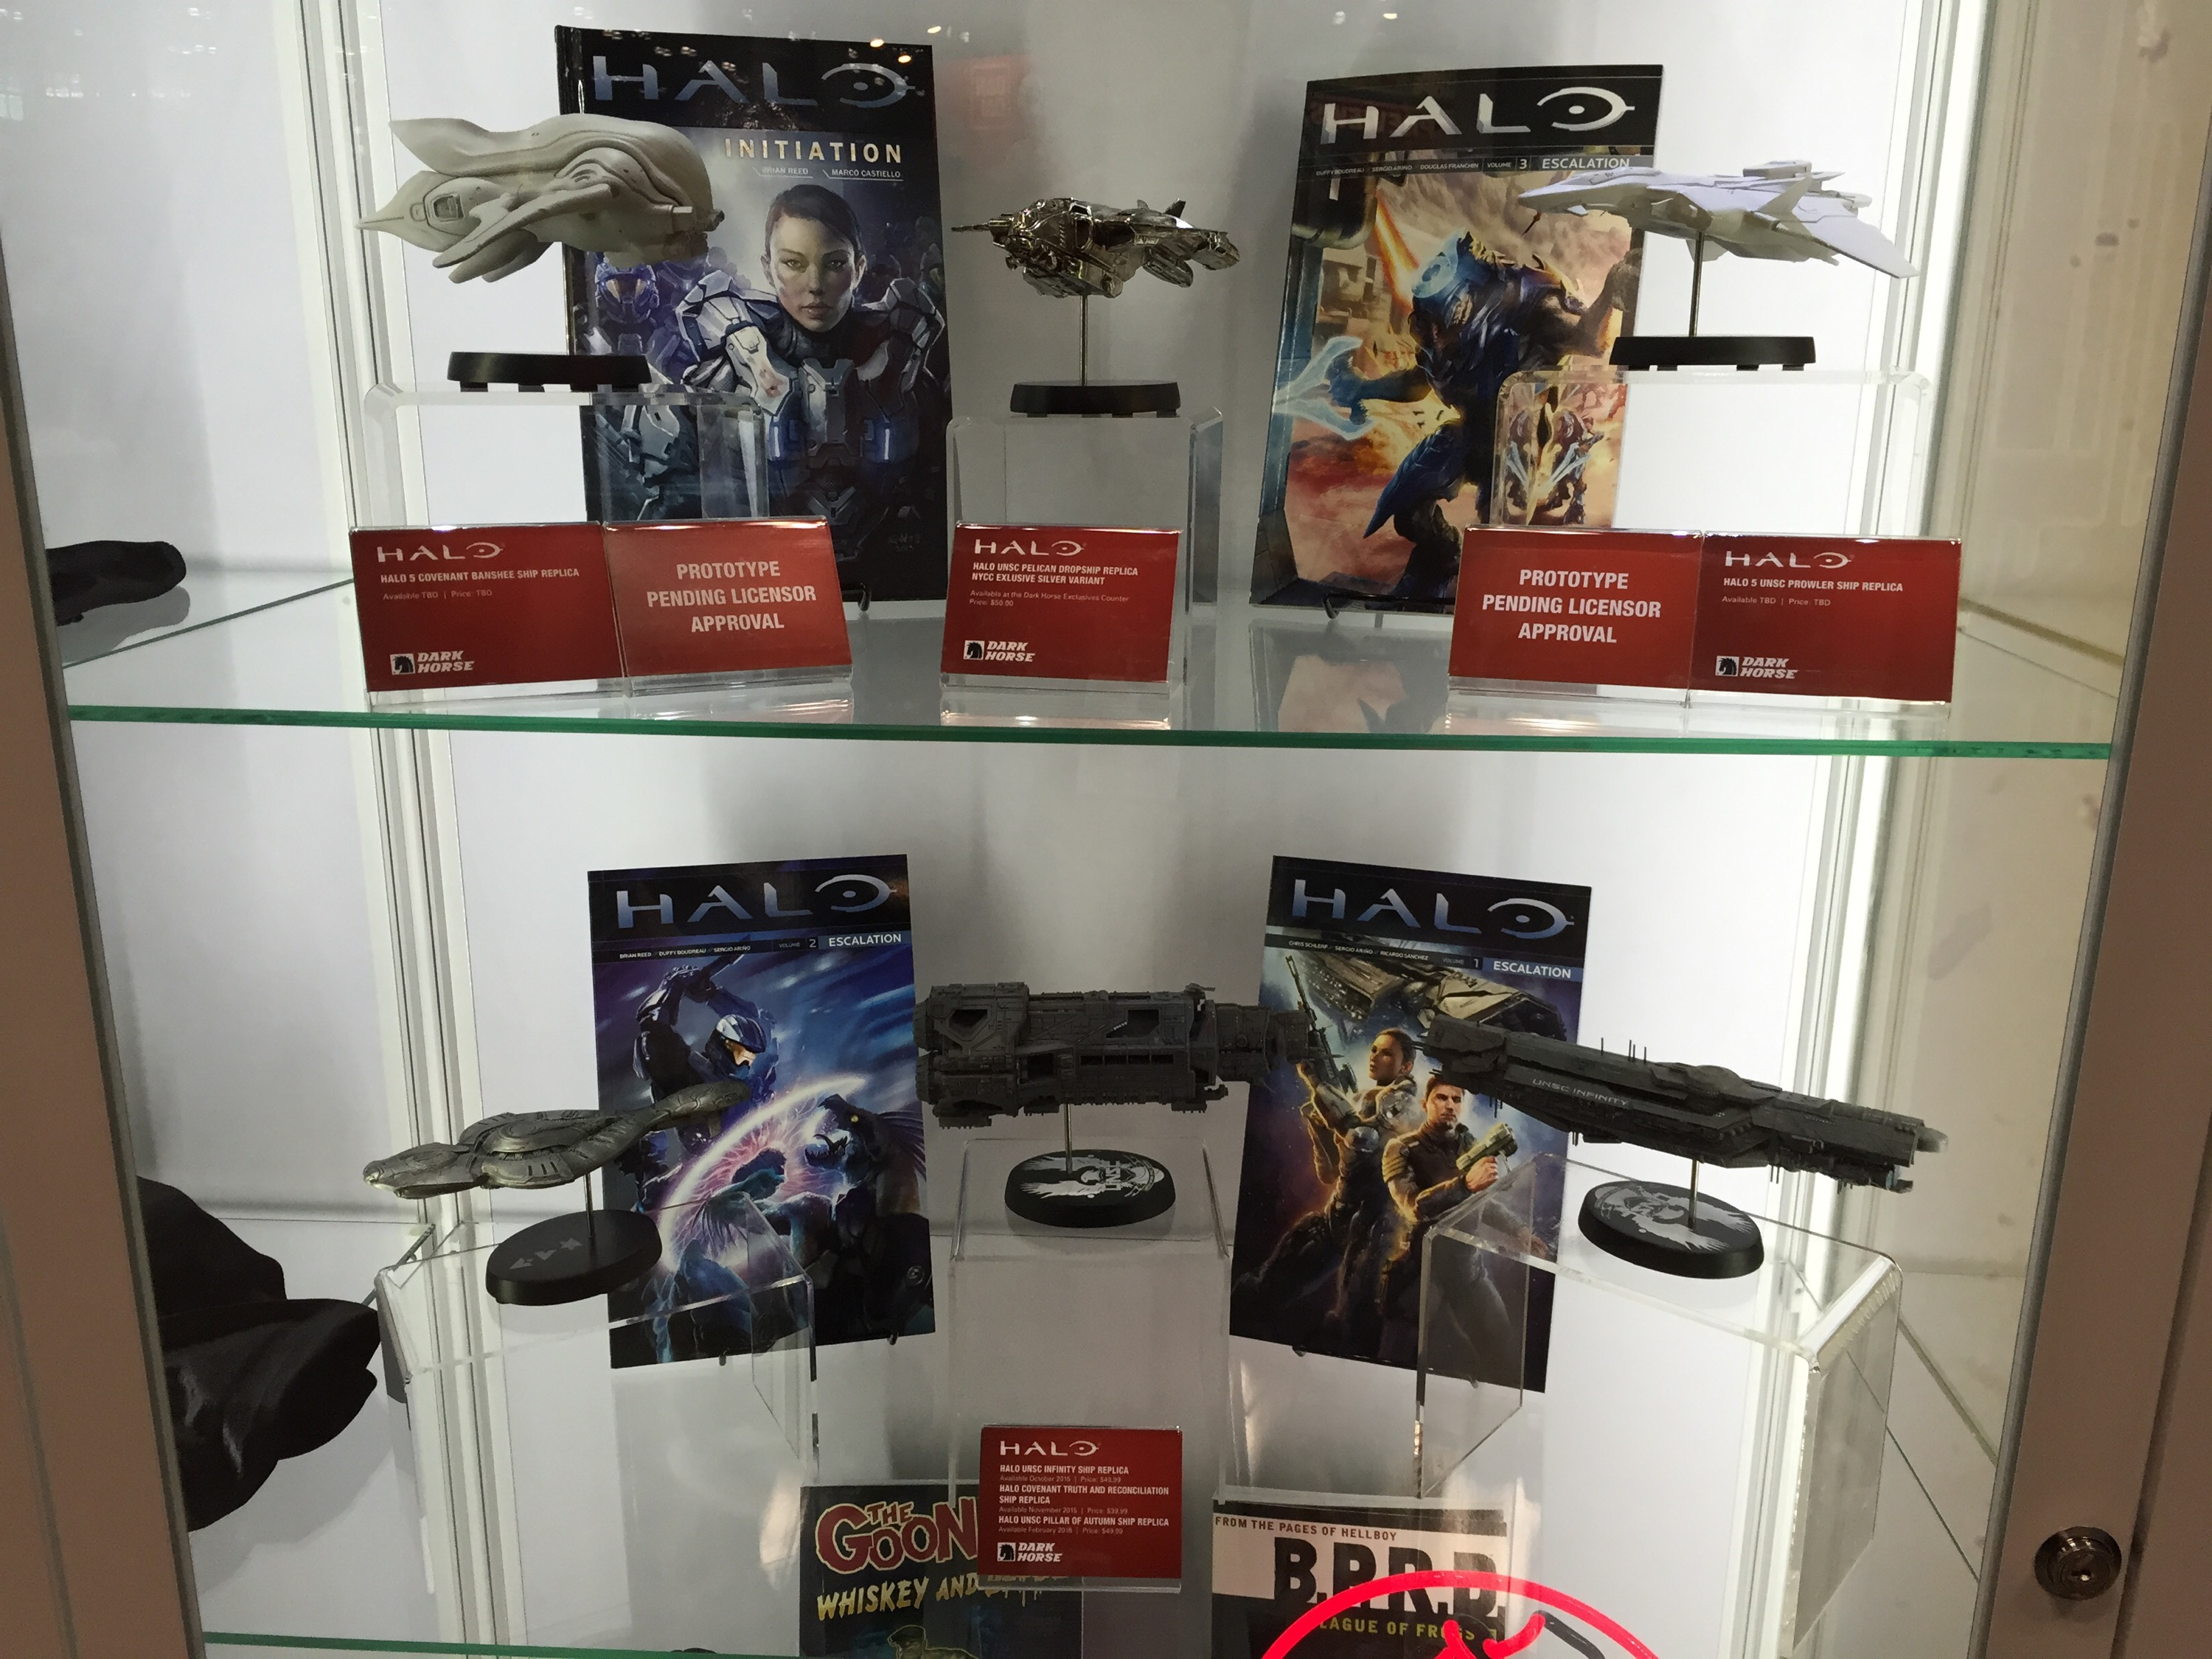 NYCC 2015: Halo 5 Vehicle Replicas! Prowler! Banshee! - Halo